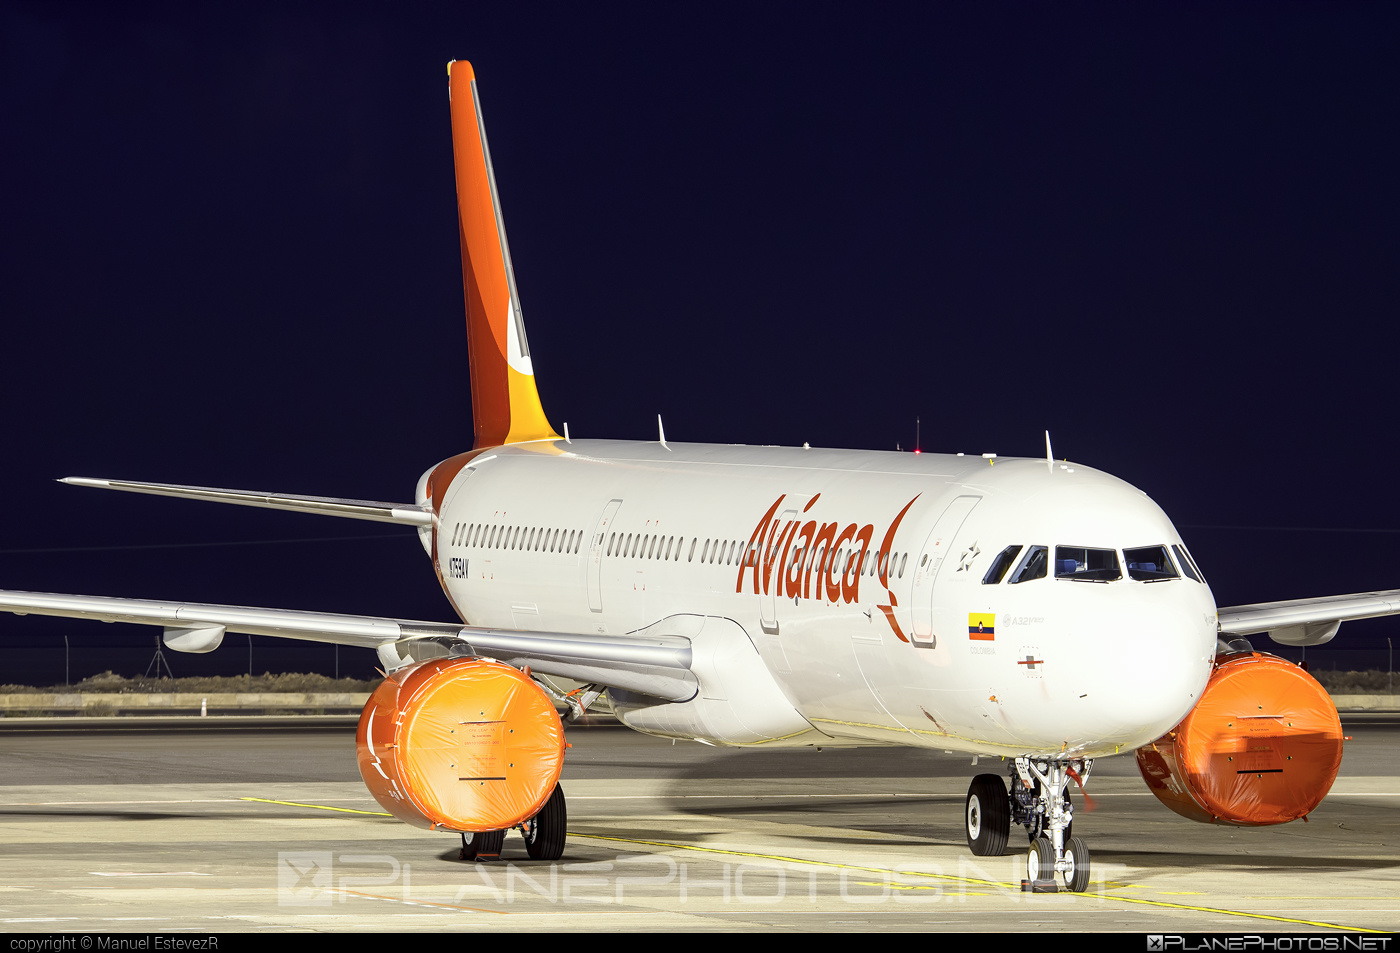 Airbus A321-253N - N759AV operated by Avianca #a320family #a321 #a321neo #airbus #airbus321 #avianca